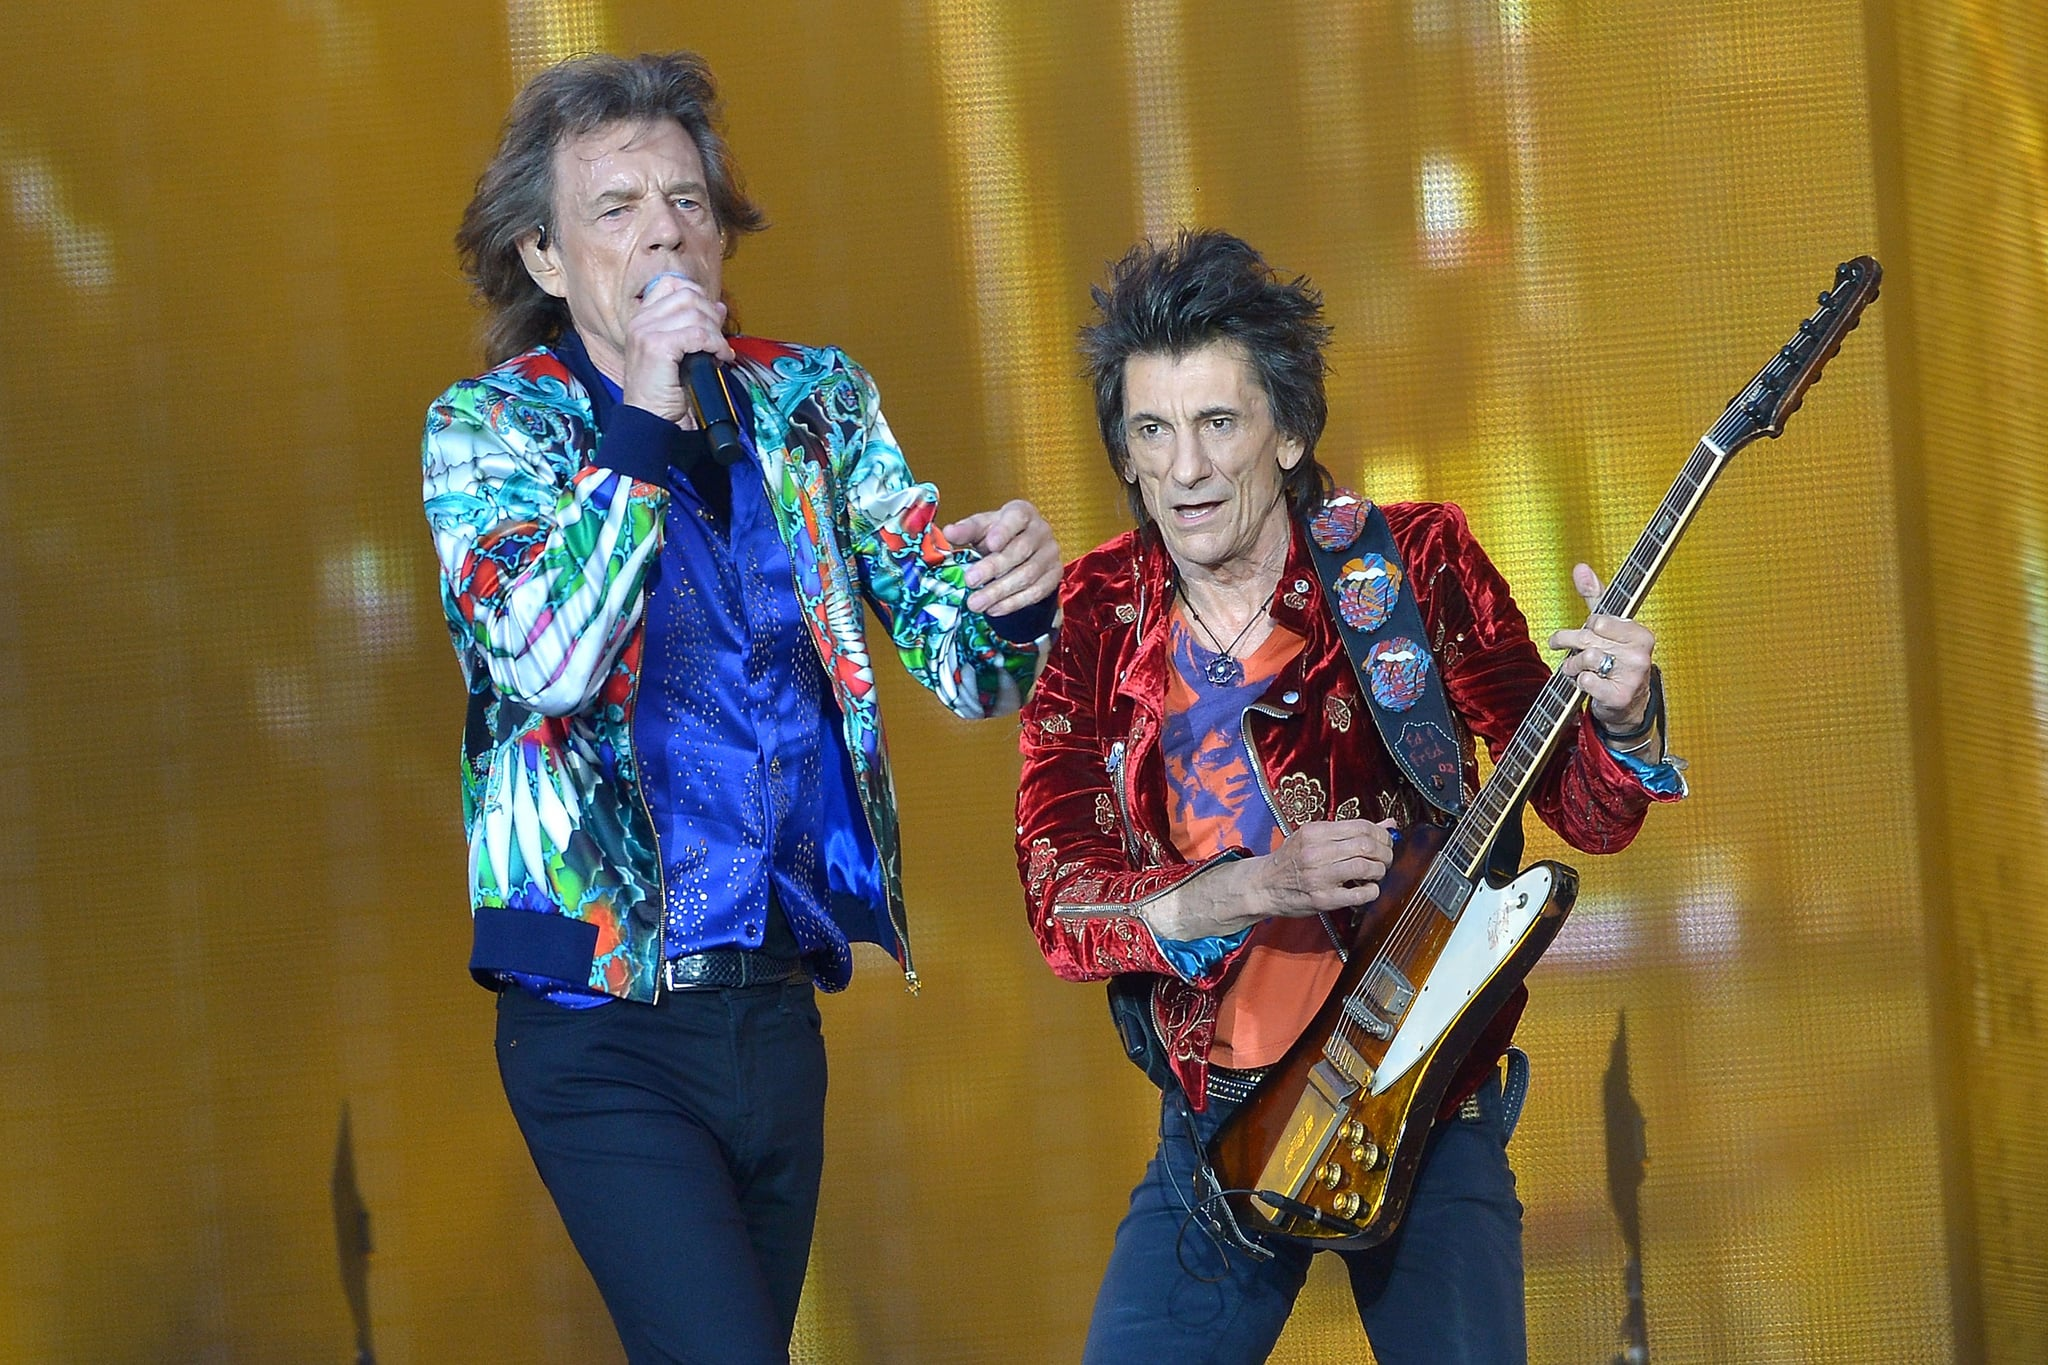 LONDON, ENGLAND - JUNE 19:  Sir Mick Jagger and Ronnie Wood of The Rolling Stones perform live on stage at Twickenham Stadium during the 'No Filter' tour, on June 19, 2018 in London, England.  (Photo by Jim Dyson/Getty Images)